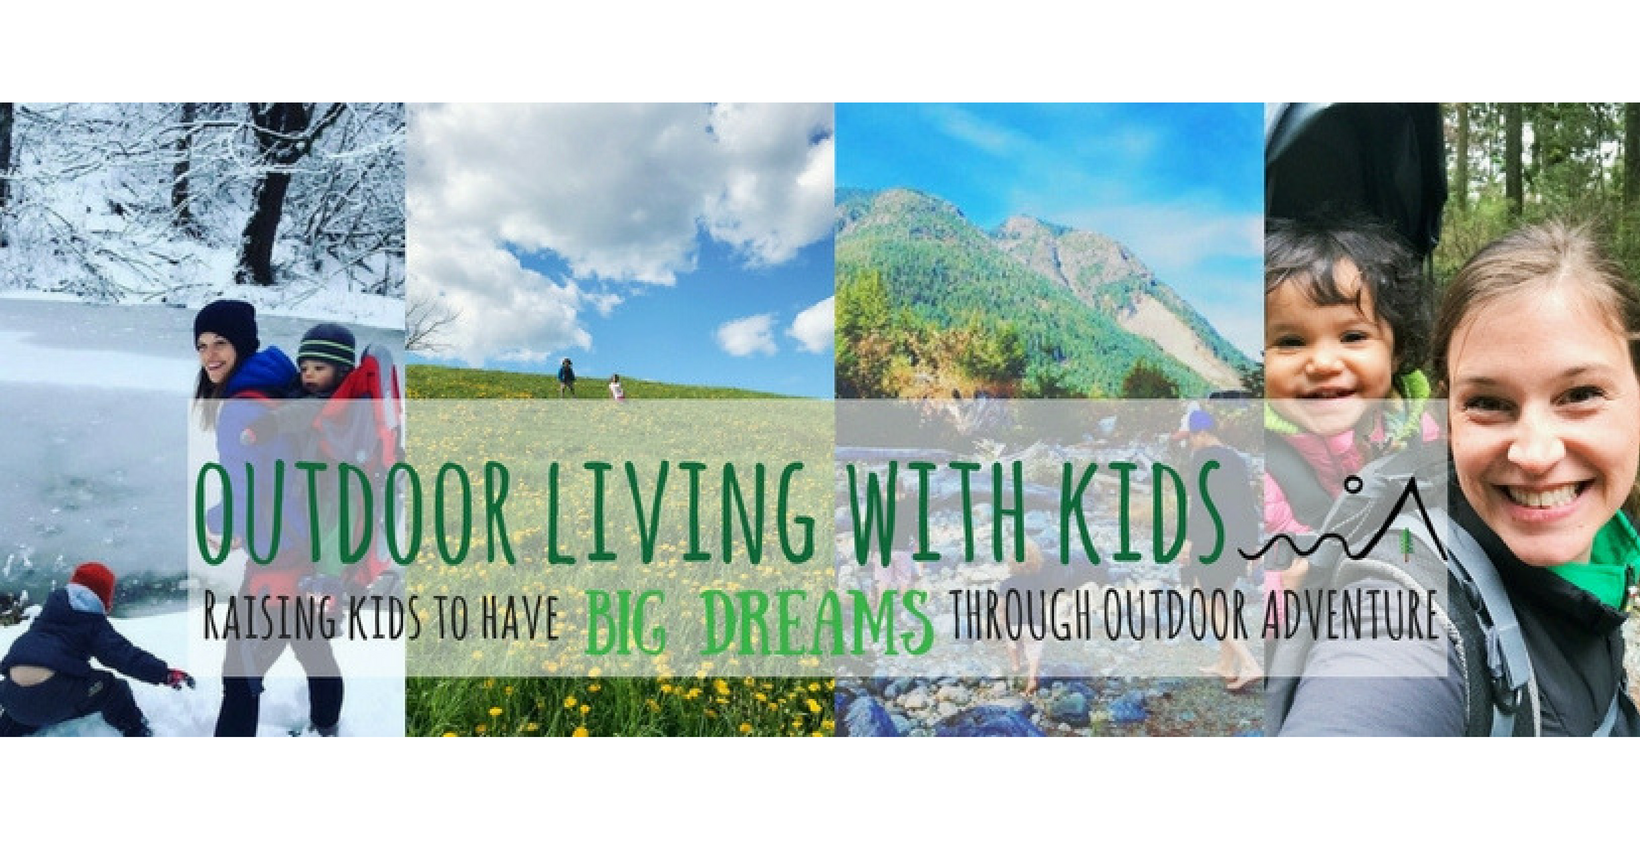 find hiking friends on outdoor living with kids on facebook